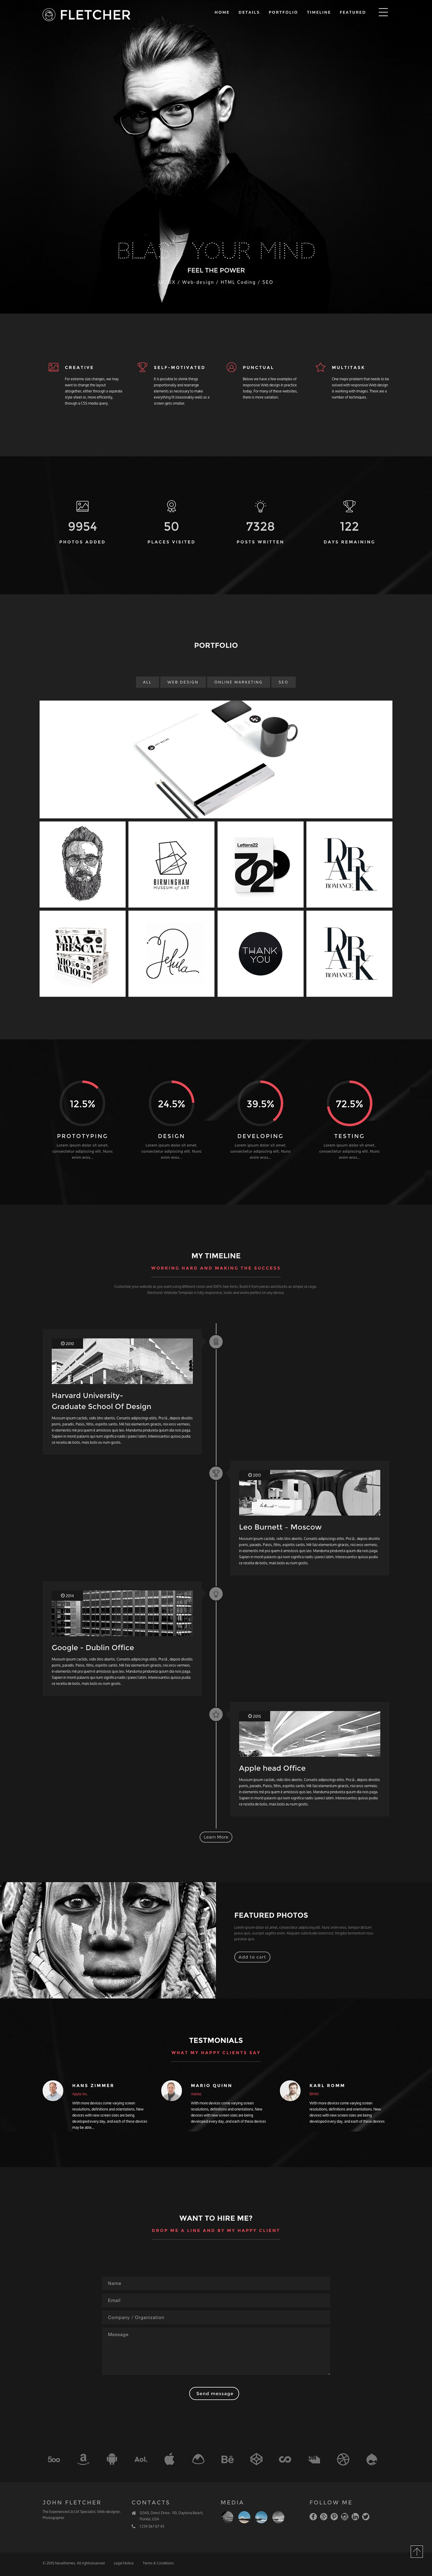 pres a ply templates - 39 fletcher 39 is a one page html template that aims to